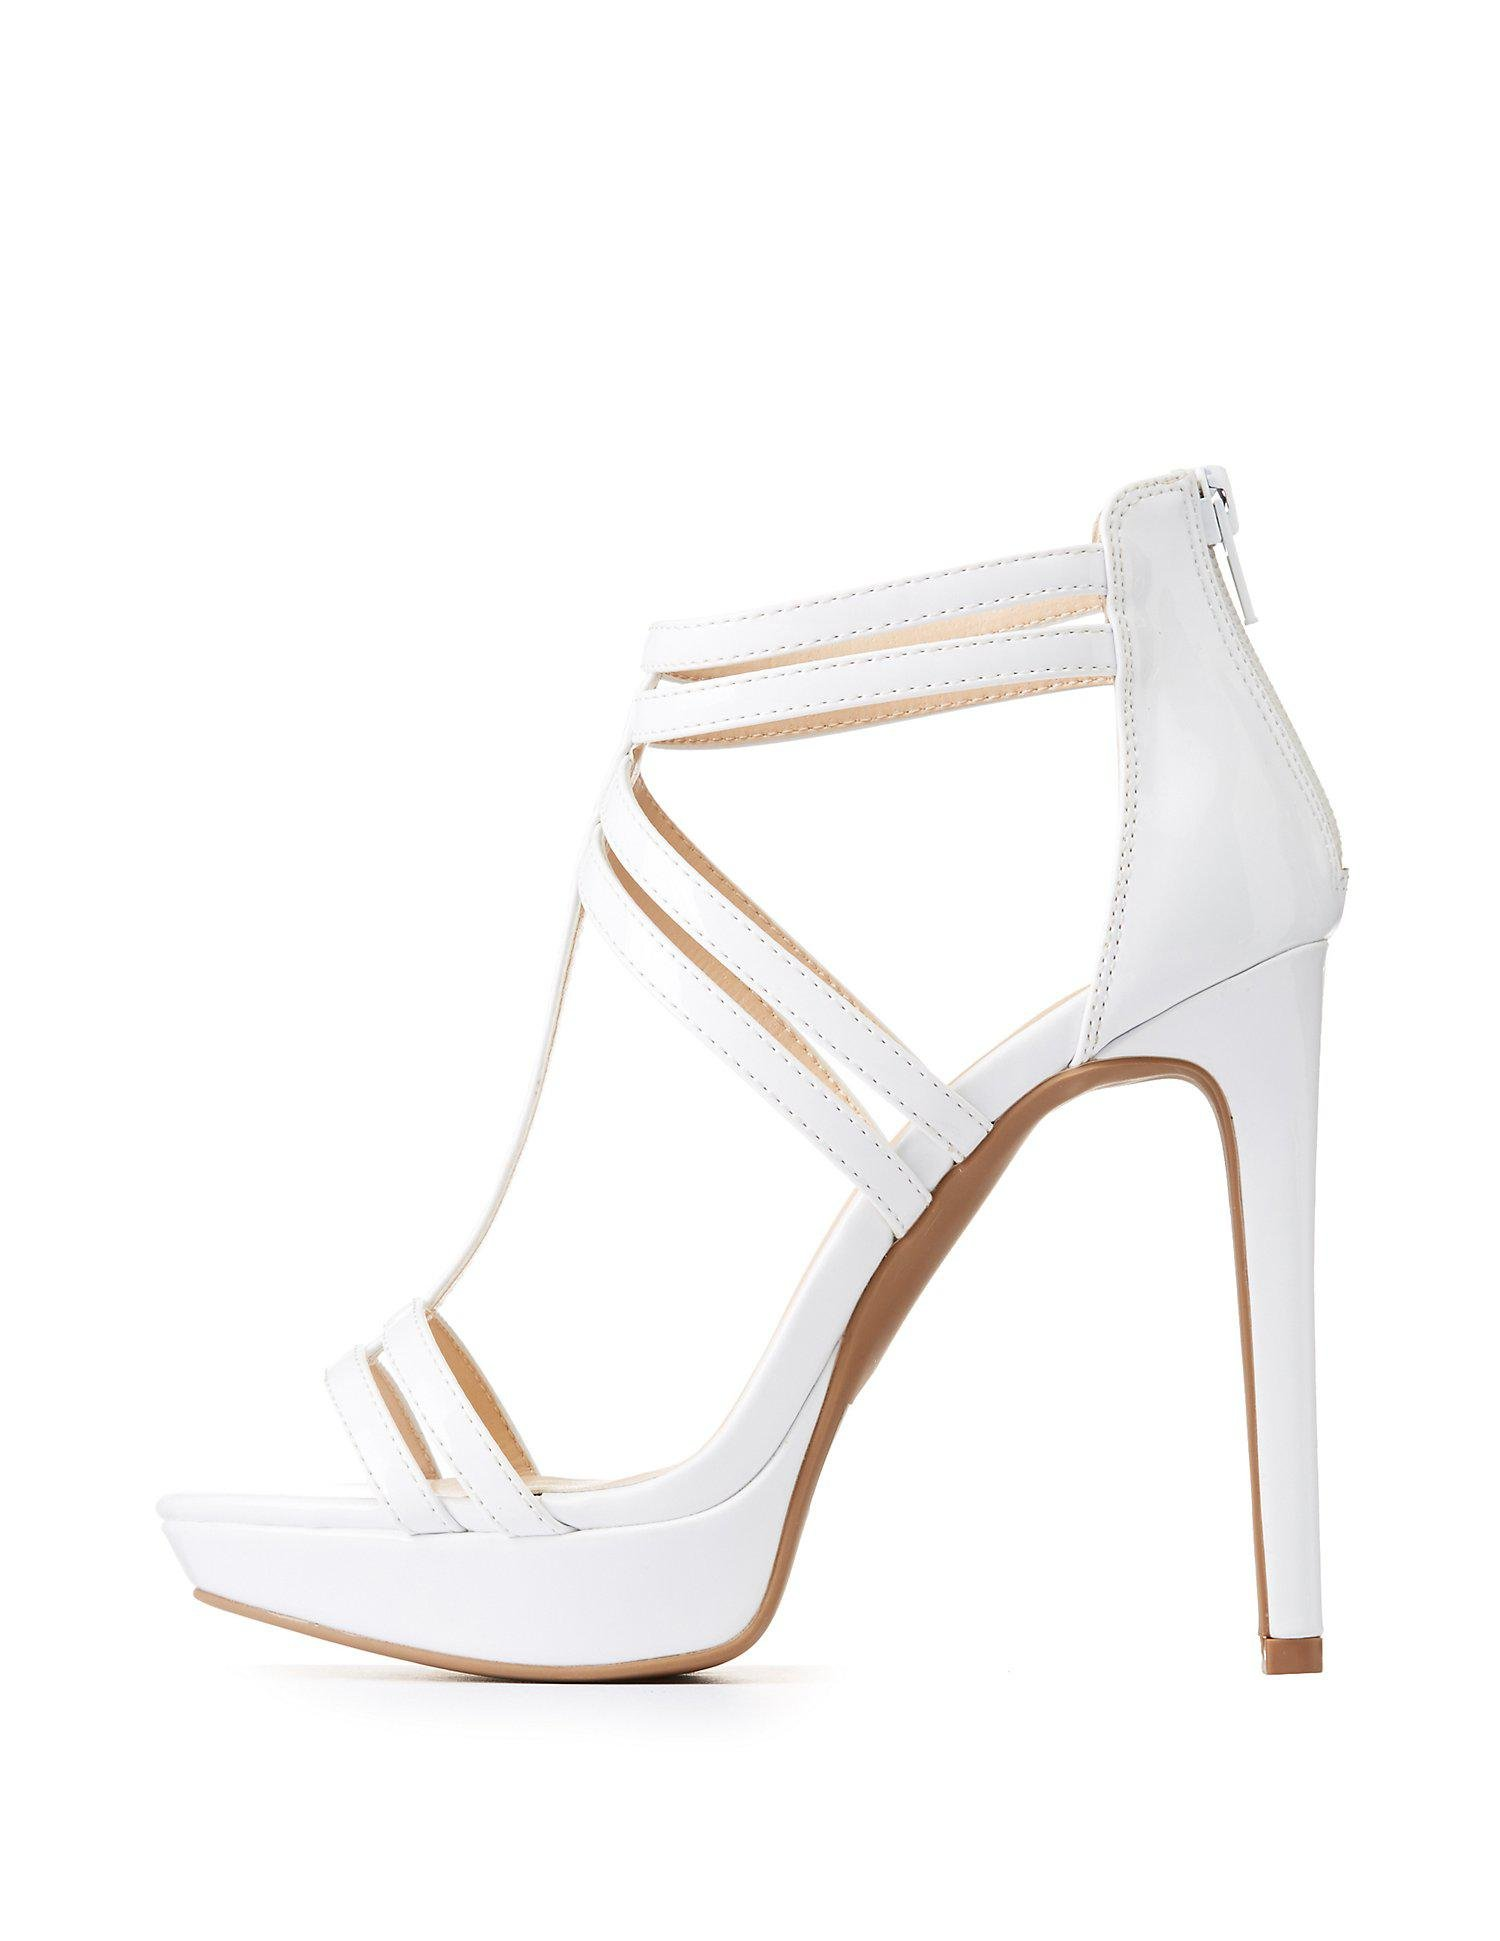 7bf612dc87b3e Lyst - Charlotte Russe Caged Platform Sandals in White